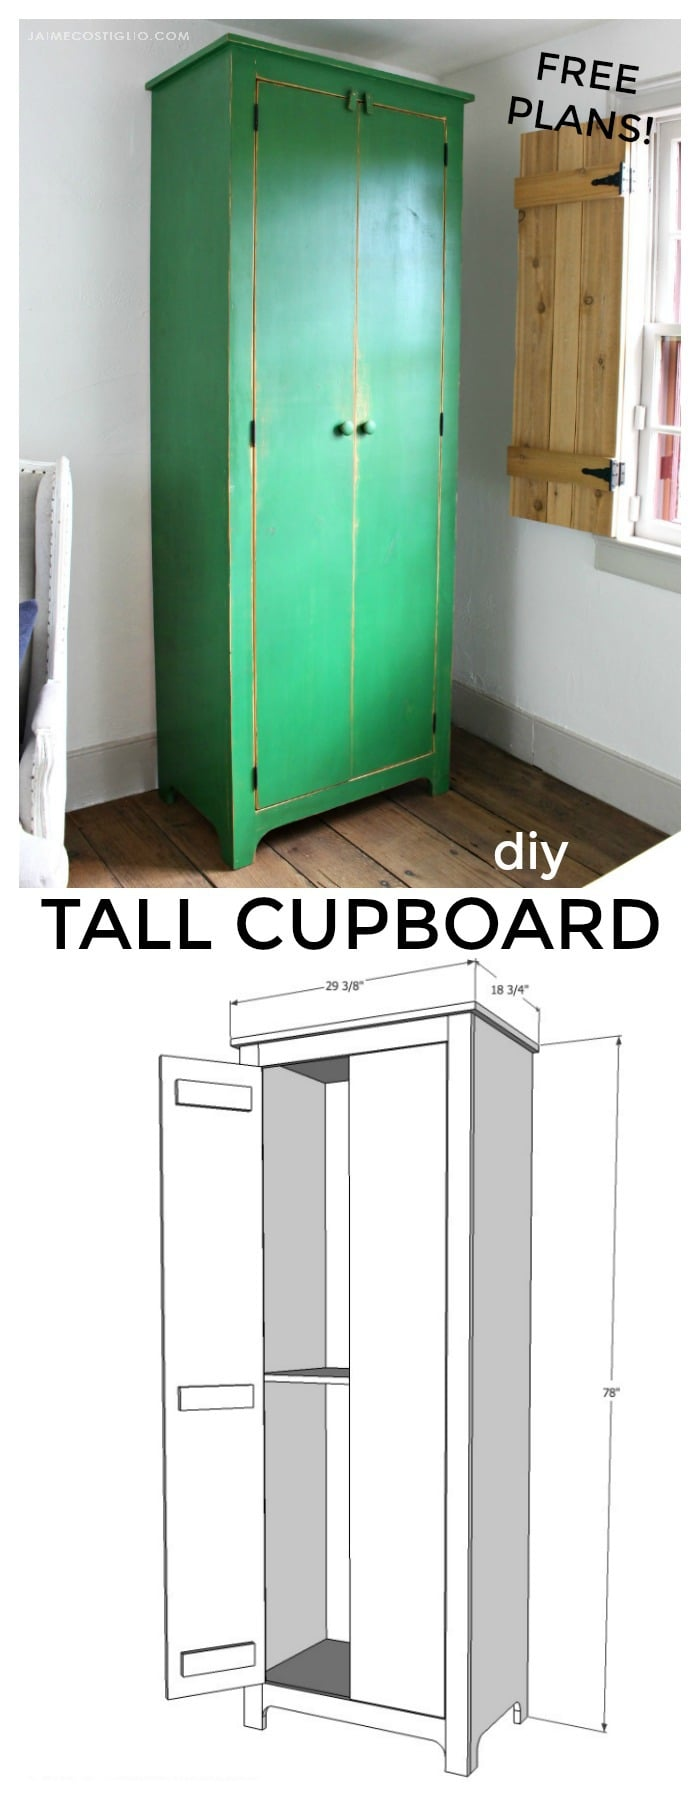 tall cupboard free plans - jaime costiglio